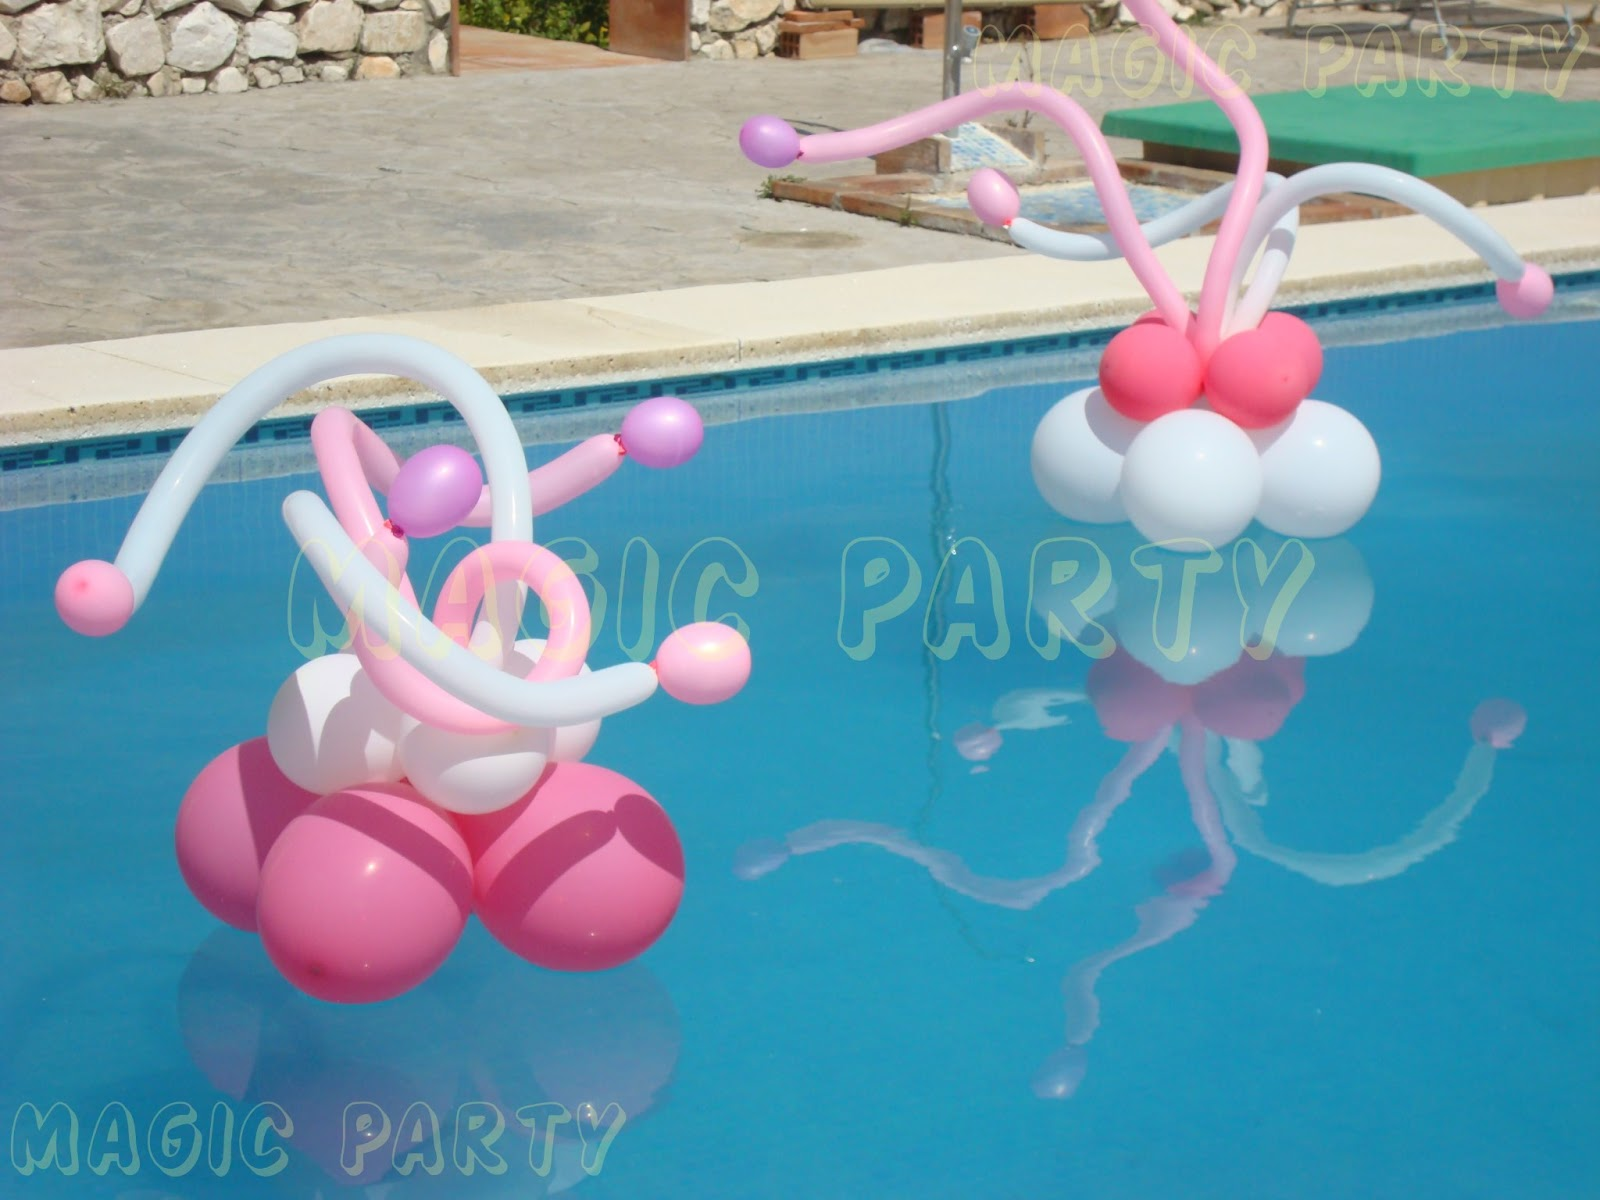 Magic party comuni n de violeta - Adornos para piscinas ...